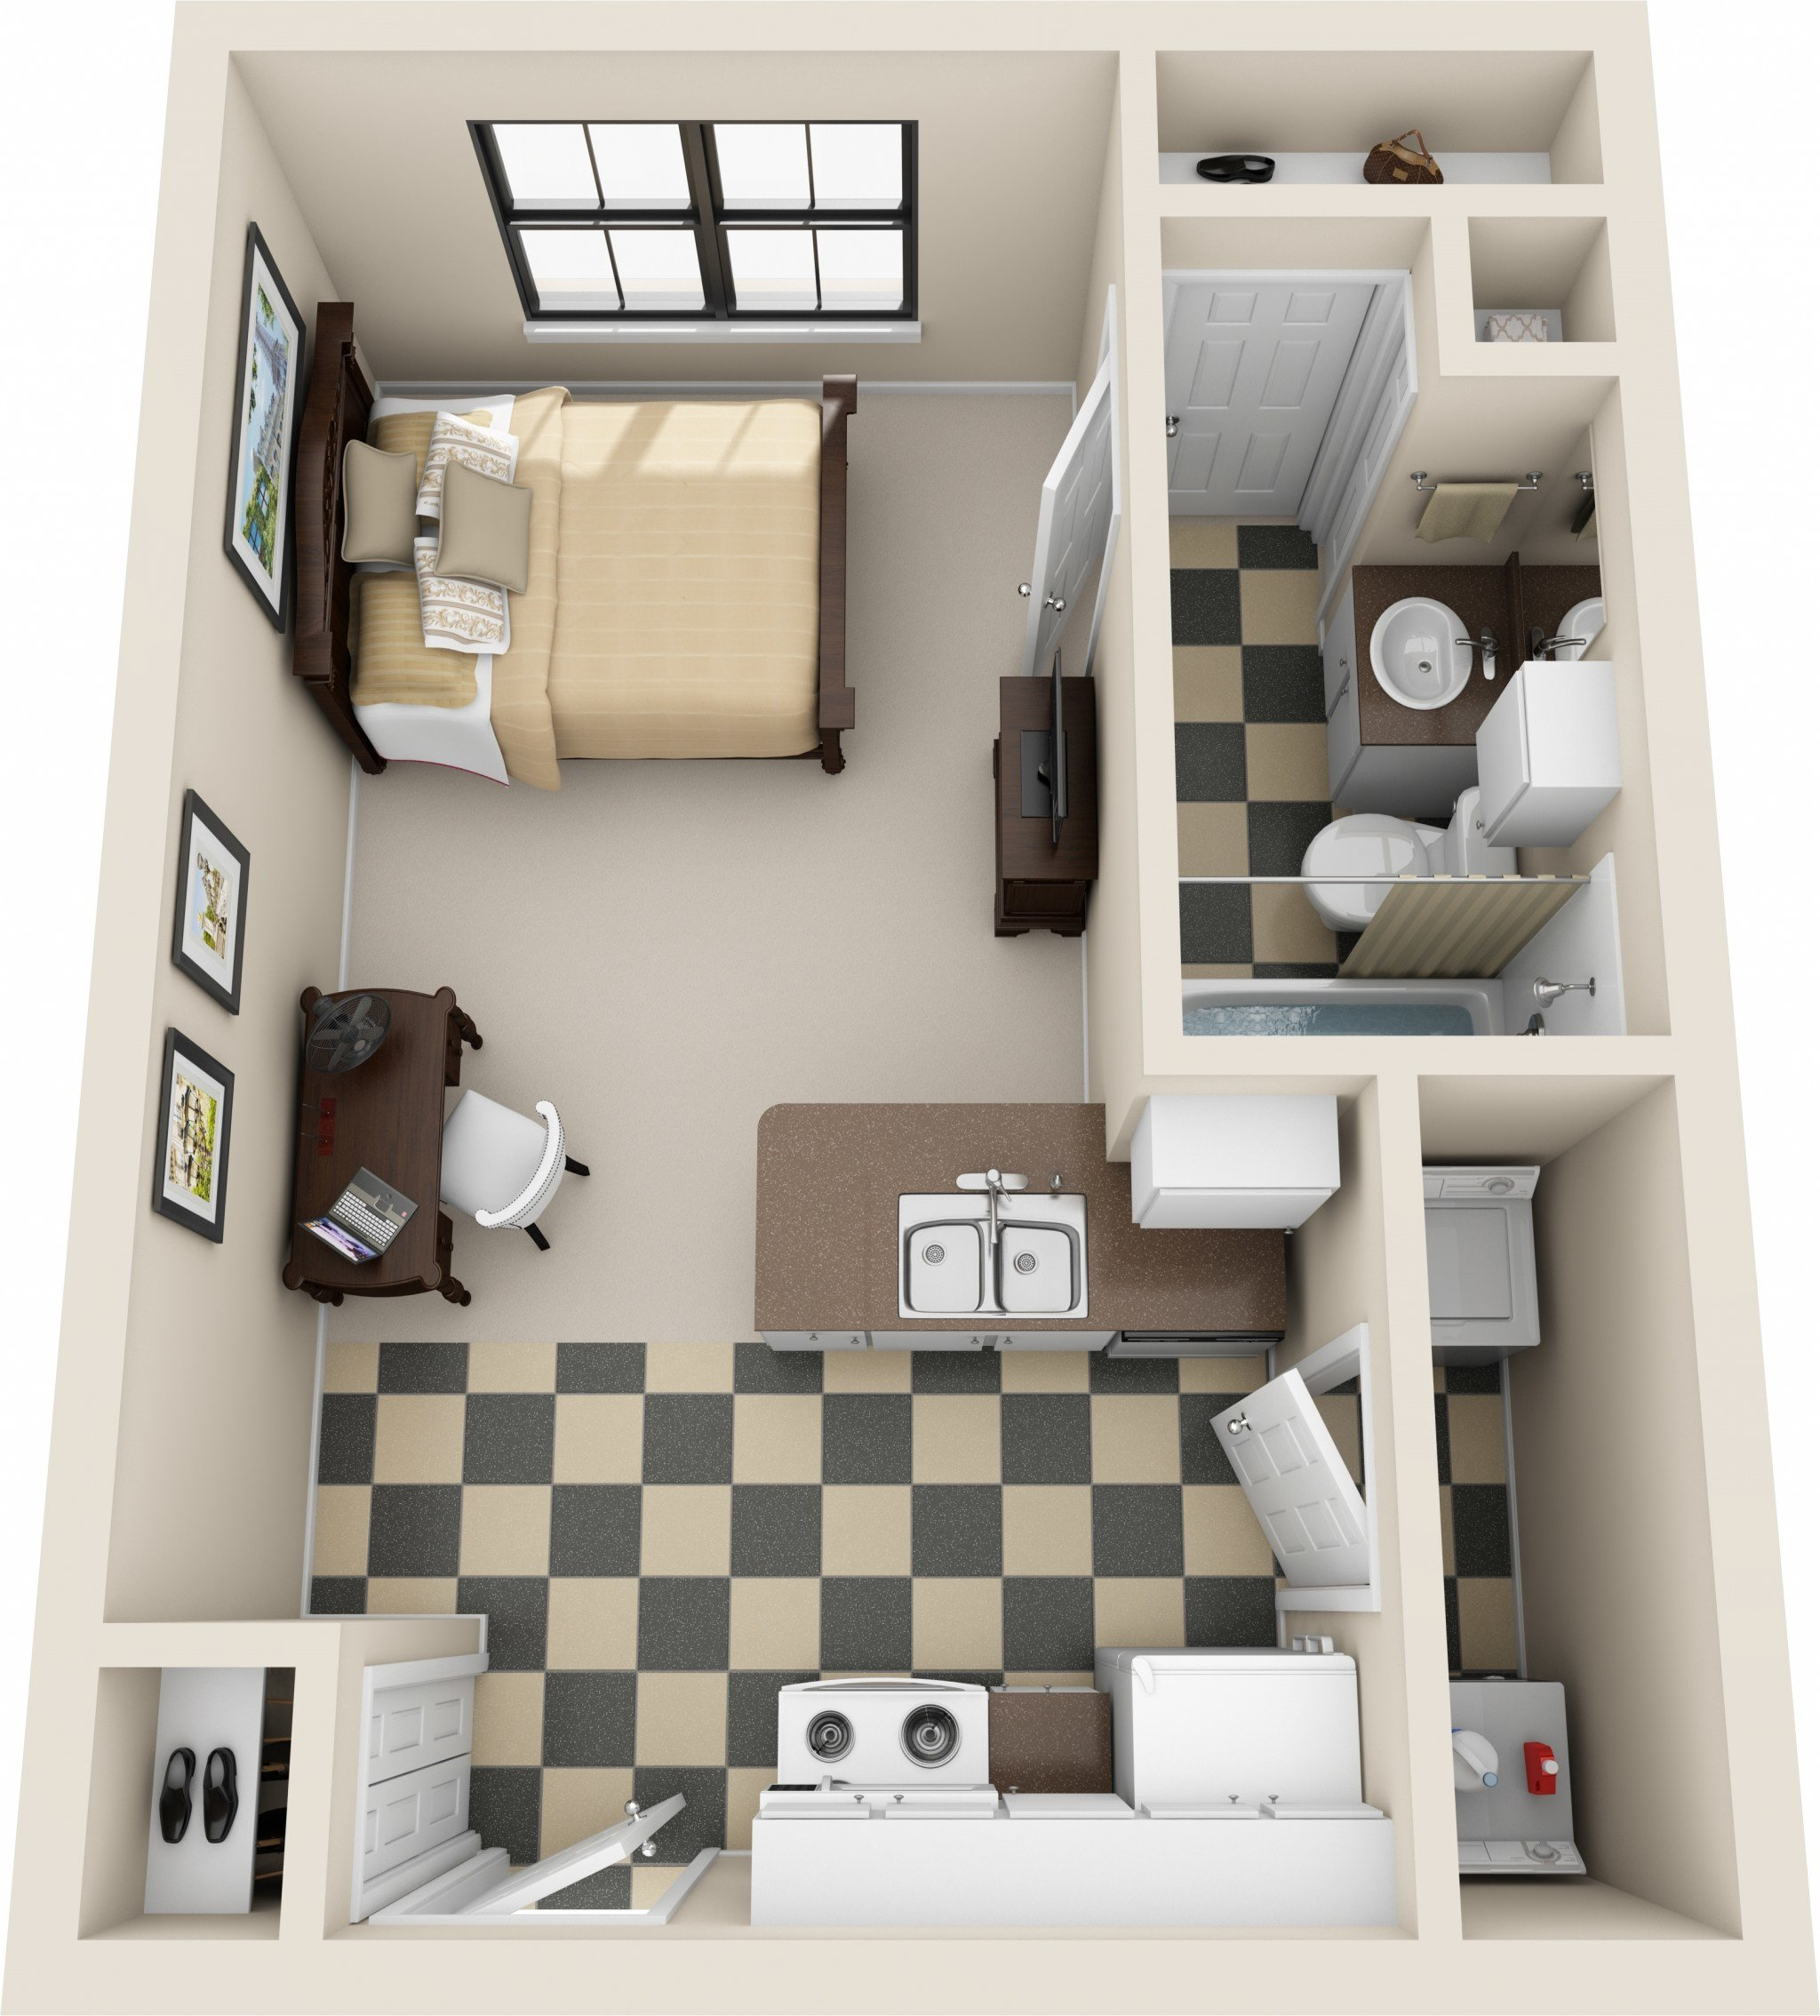 Best 1 Bedroom Apartments Baton Rouge Lsu Home Plan With Pictures